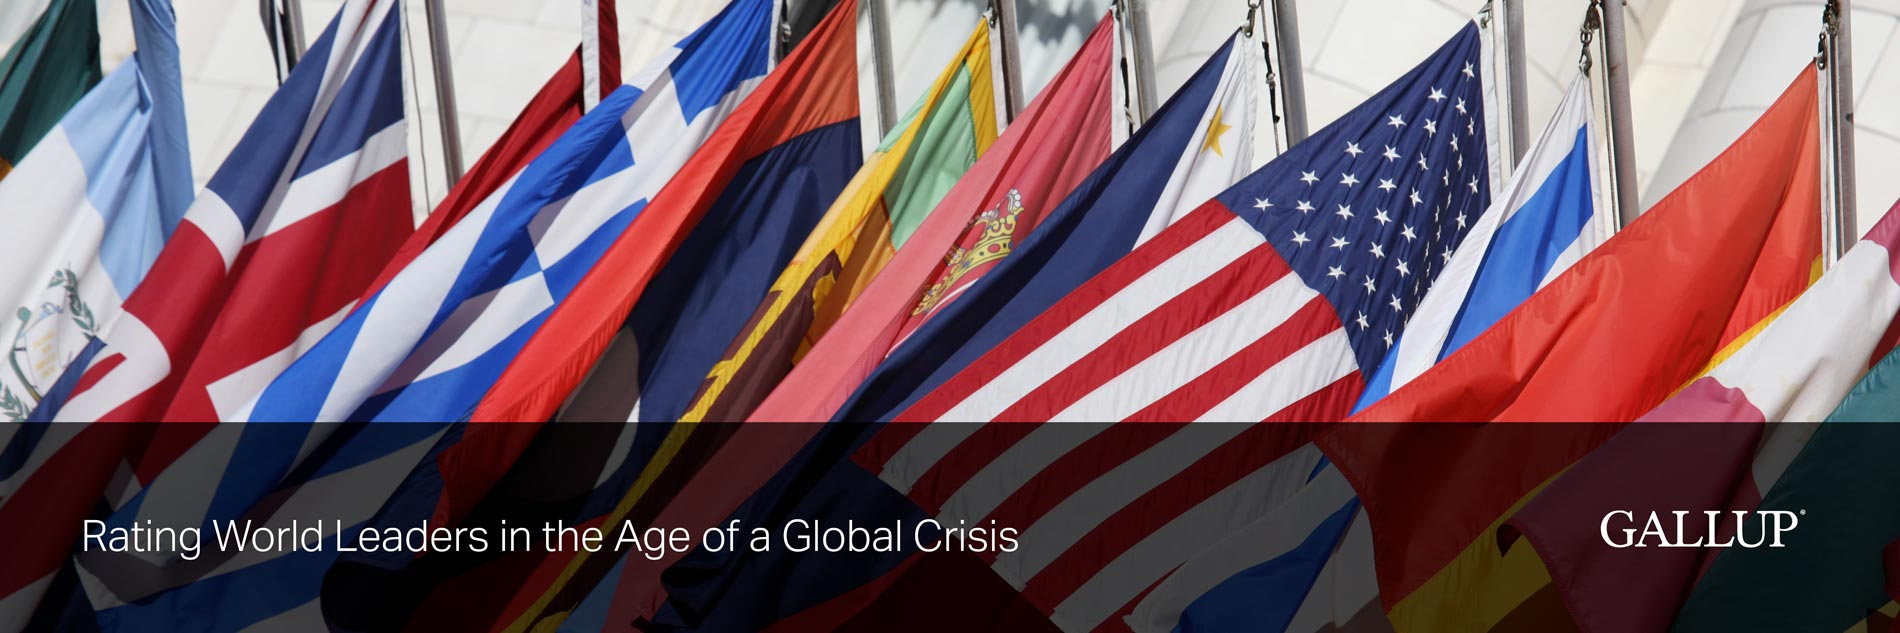 Rating World Leaders in the Age of a Global Crisis